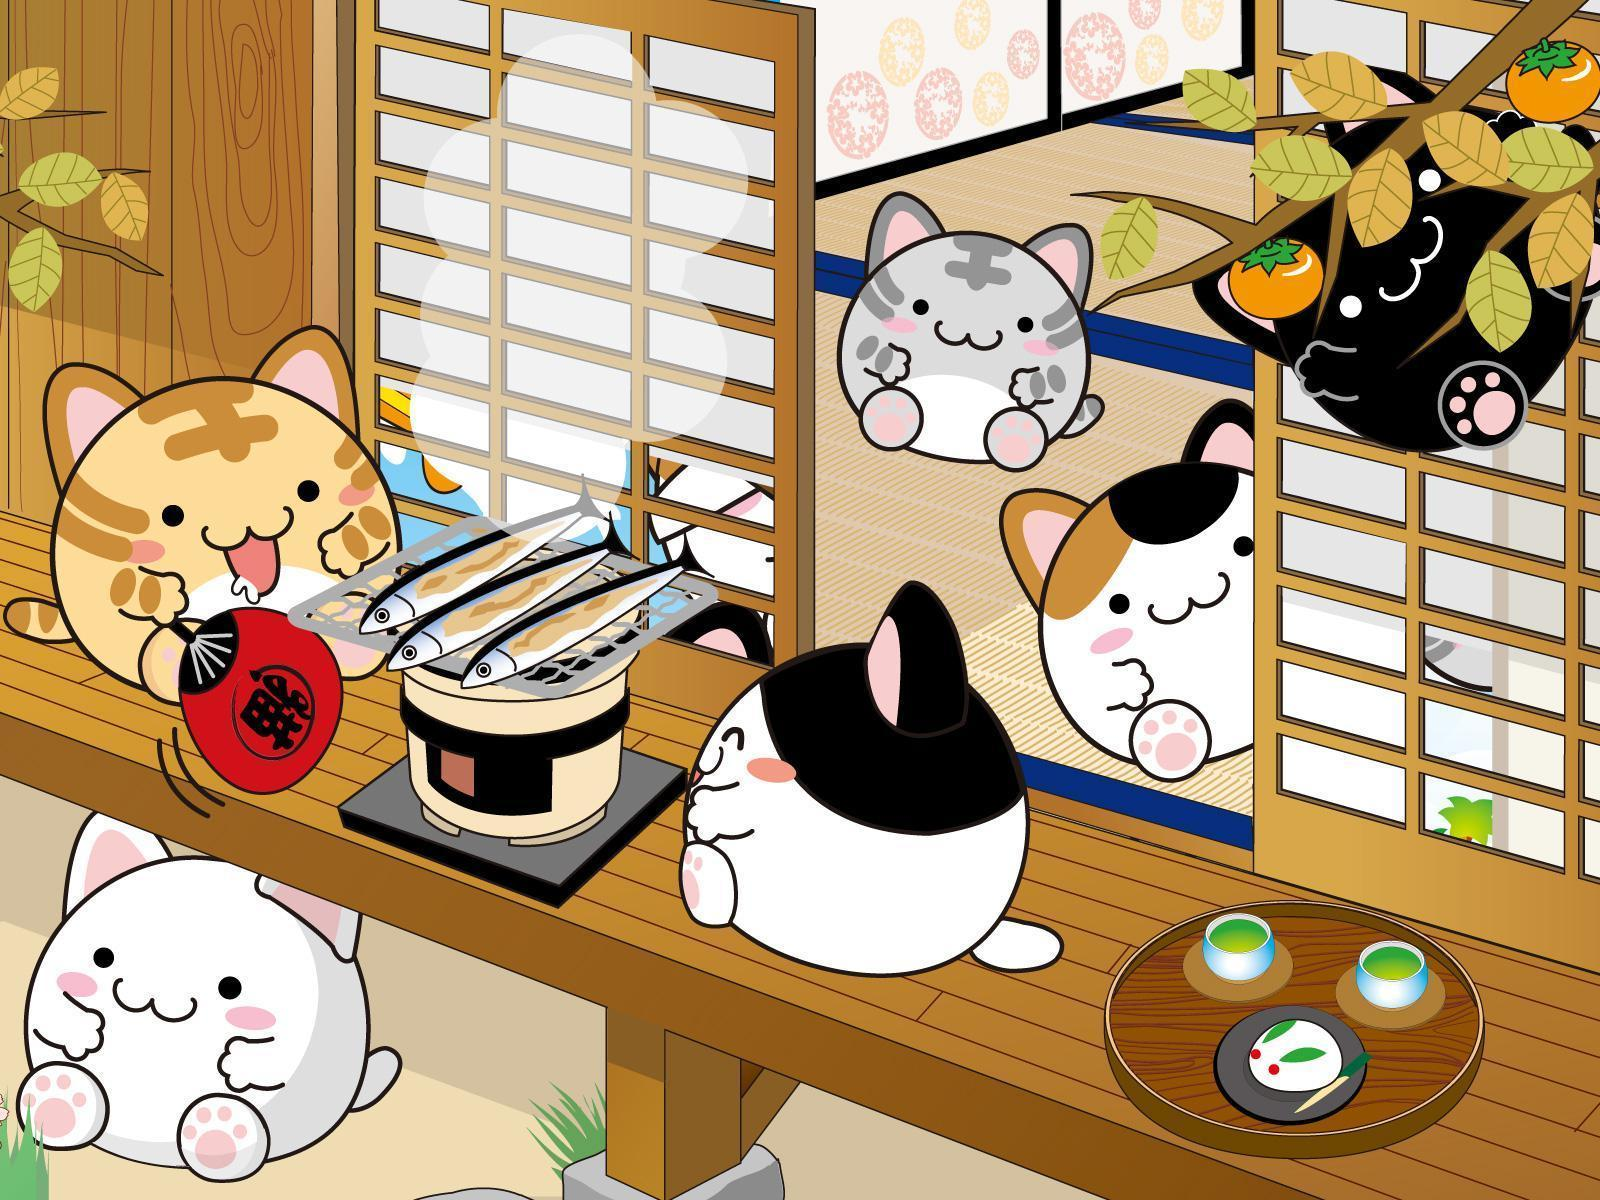 Cute japanese wallpapers wallpaper cave - Kawaii food wallpaper ...